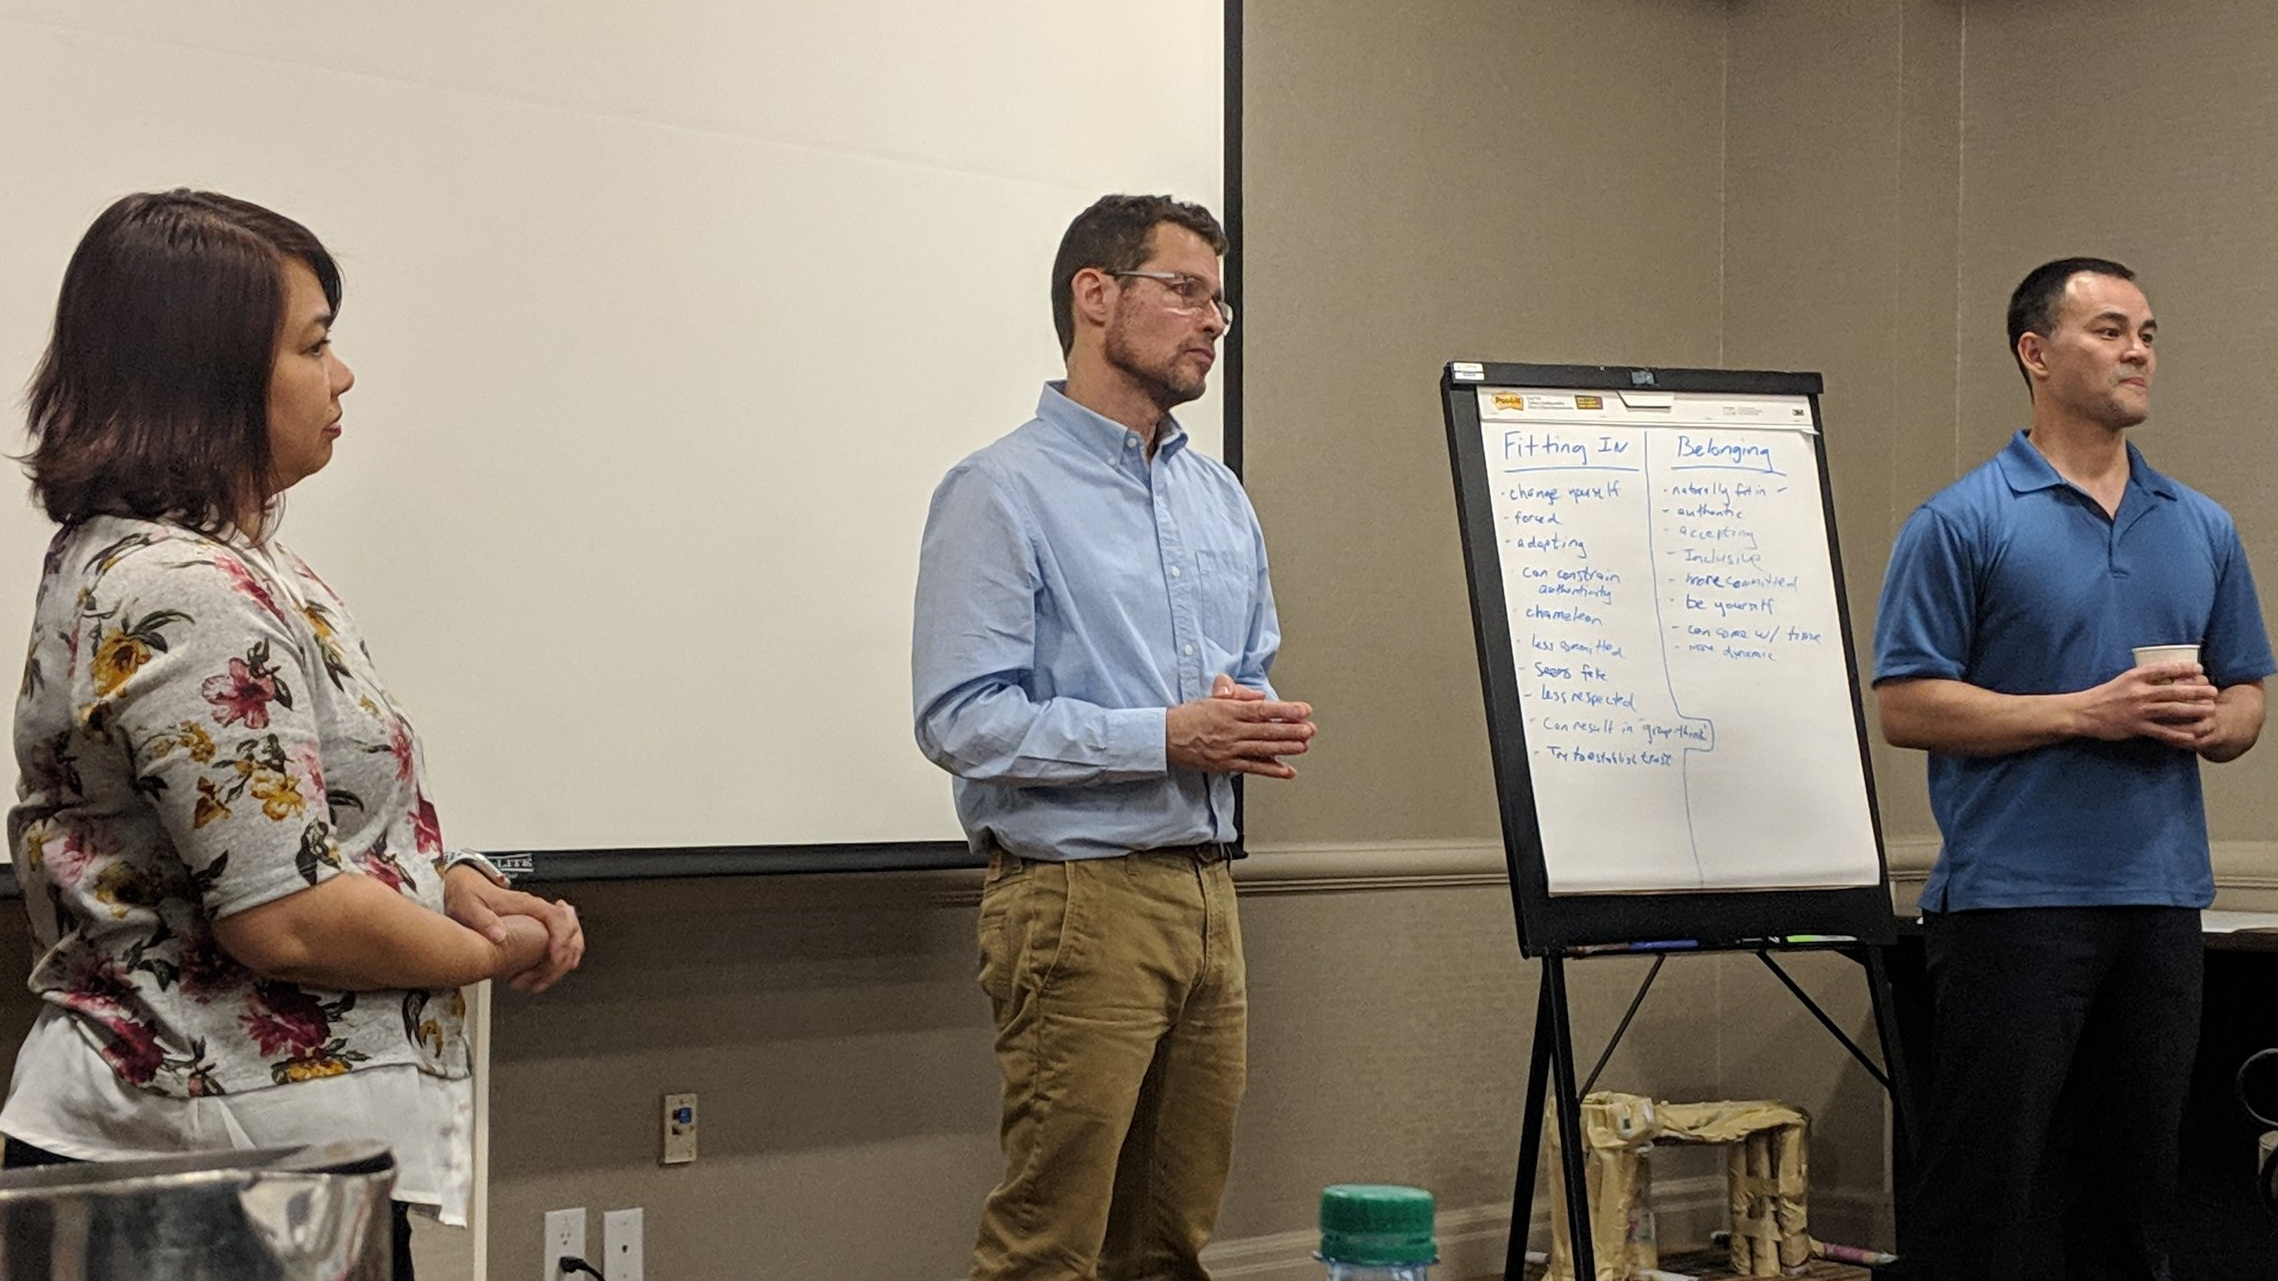 EDI alums  Melinda Pizarro, Gerald Giacchi, & Jeffrey Racicot  share stories about their own growth, development, challenges, and words of advice to the 2019 Portland class to get the most out of their EDI leadership journey experience.